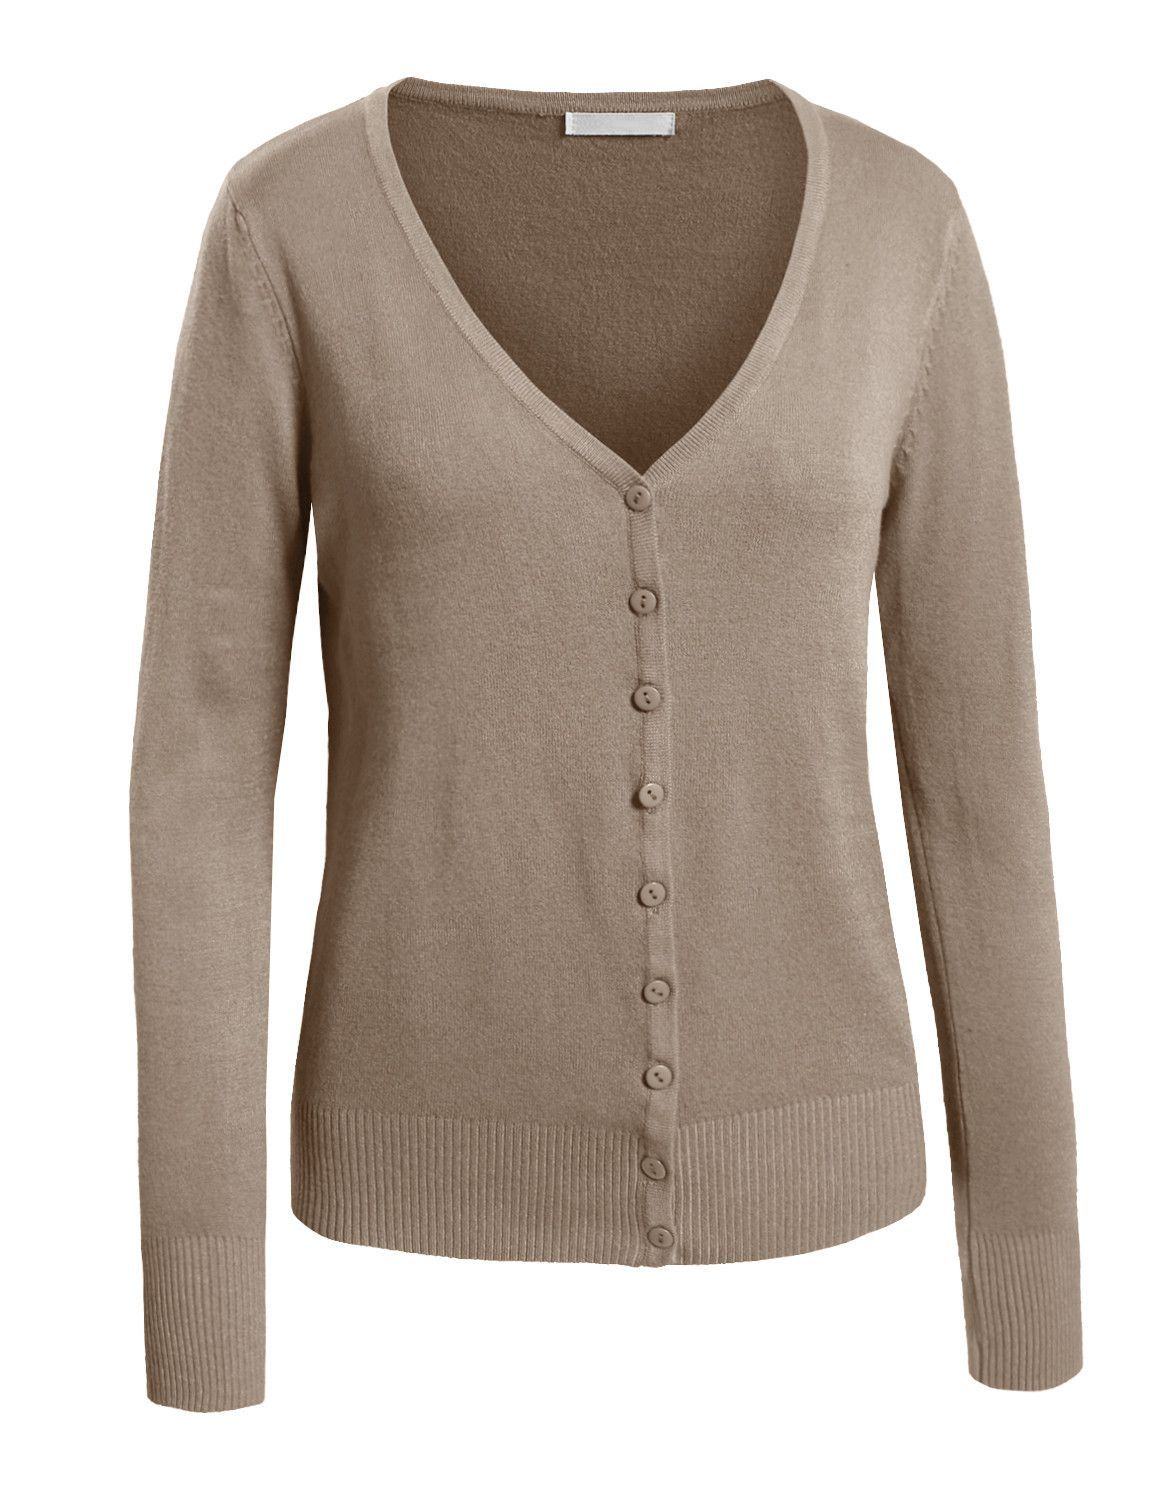 Womens Lightweight Long Sleeve Deep V Neck Knit Cardigan ...